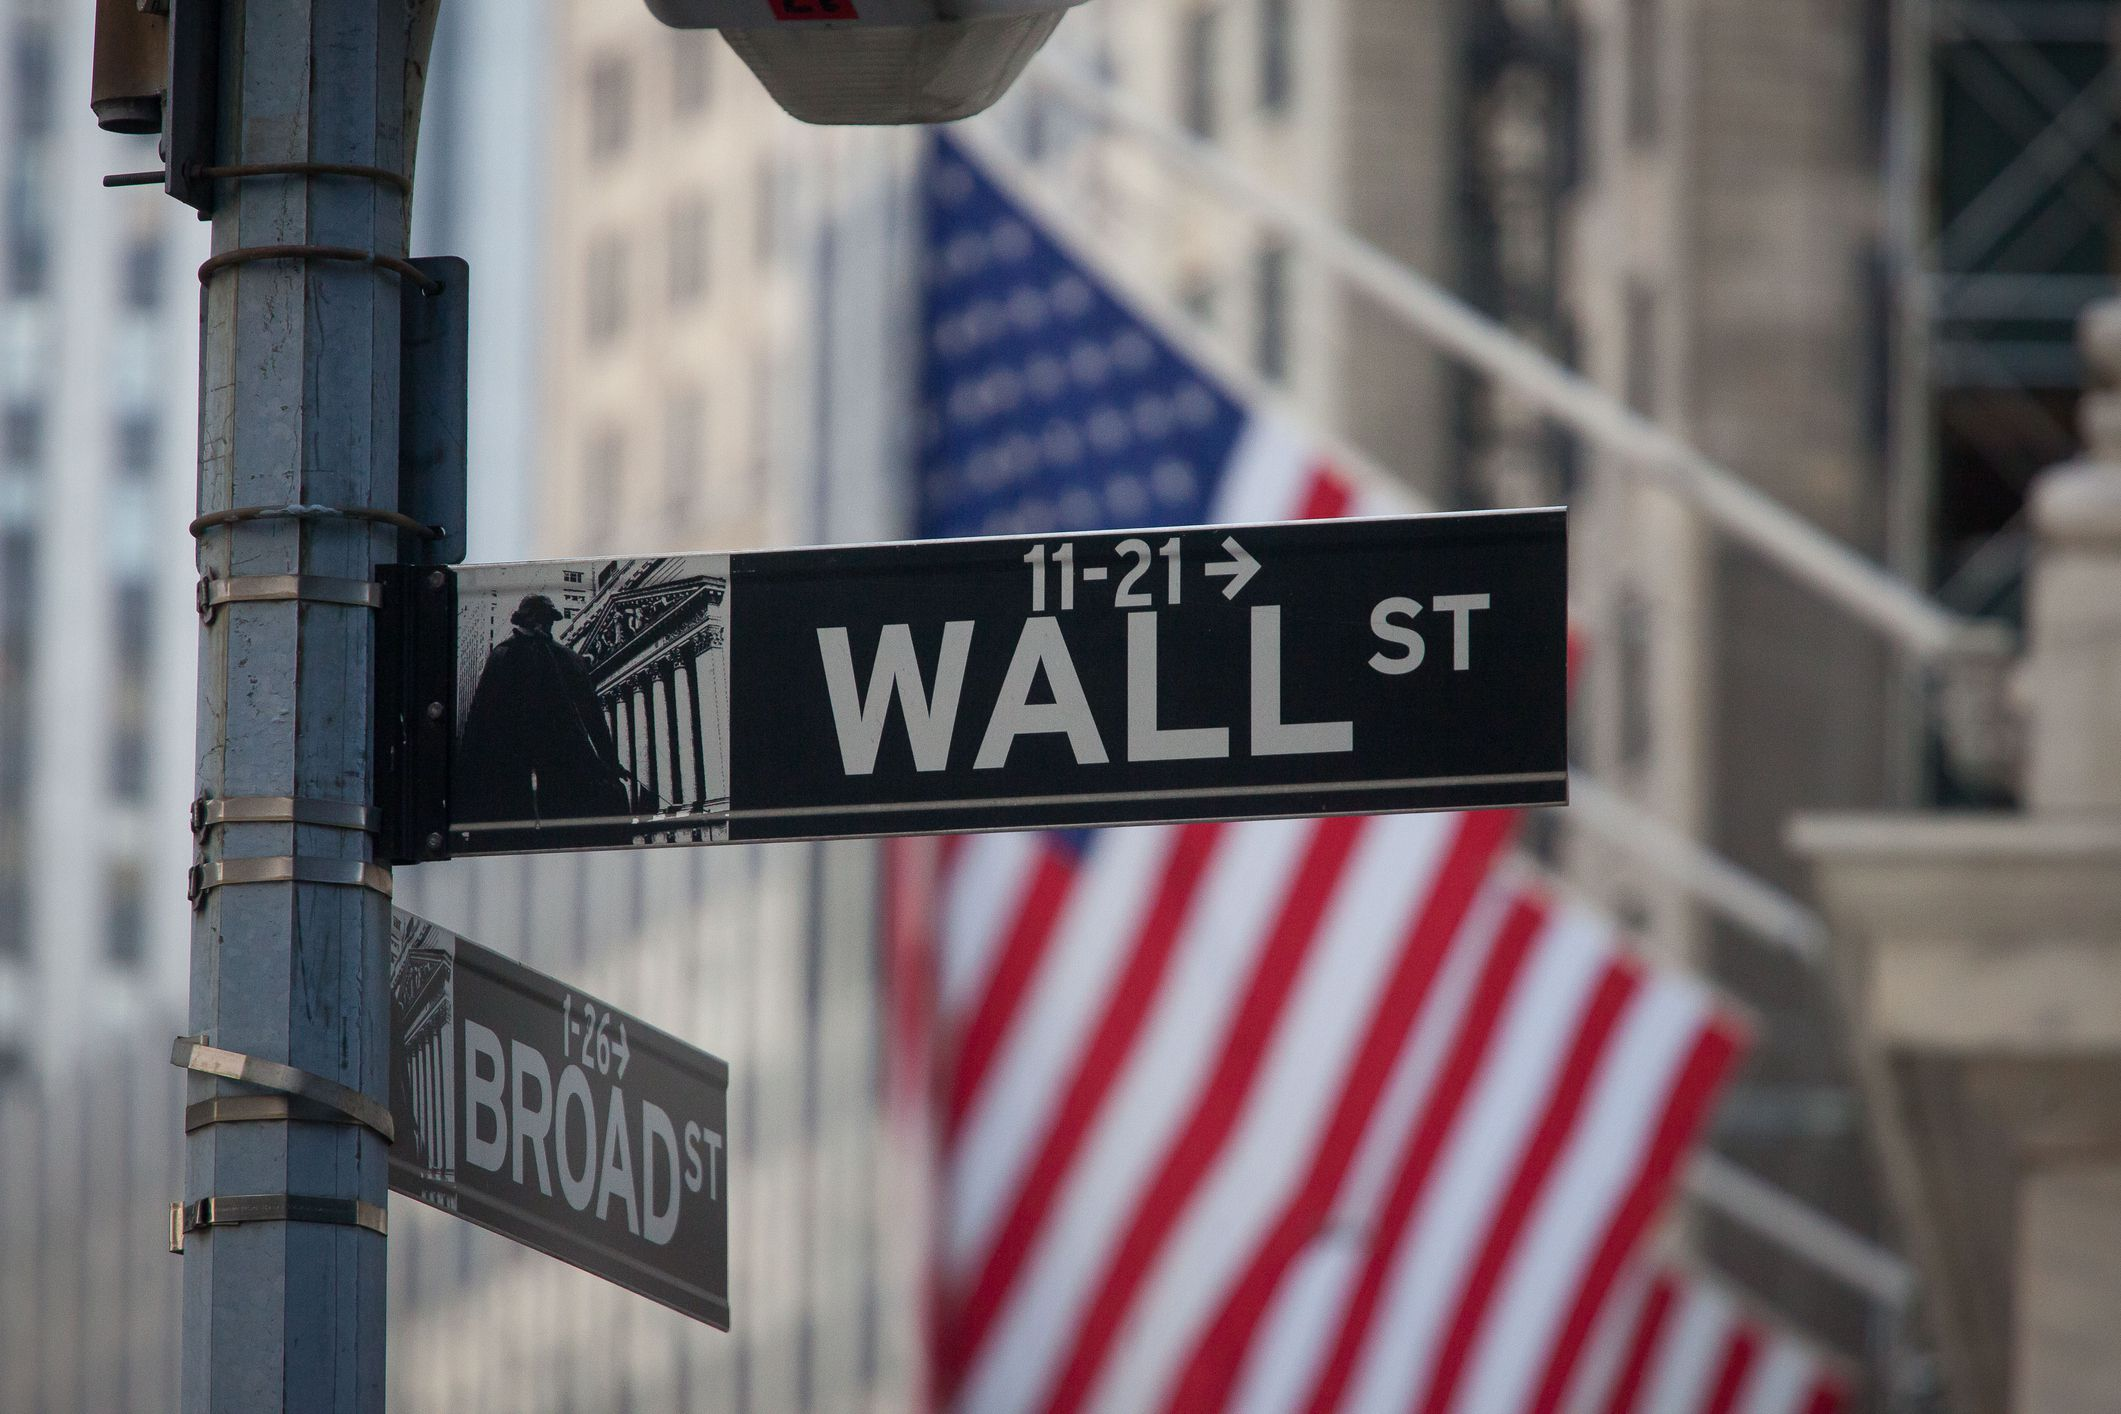 Wall Street: Location, History, and How It Works